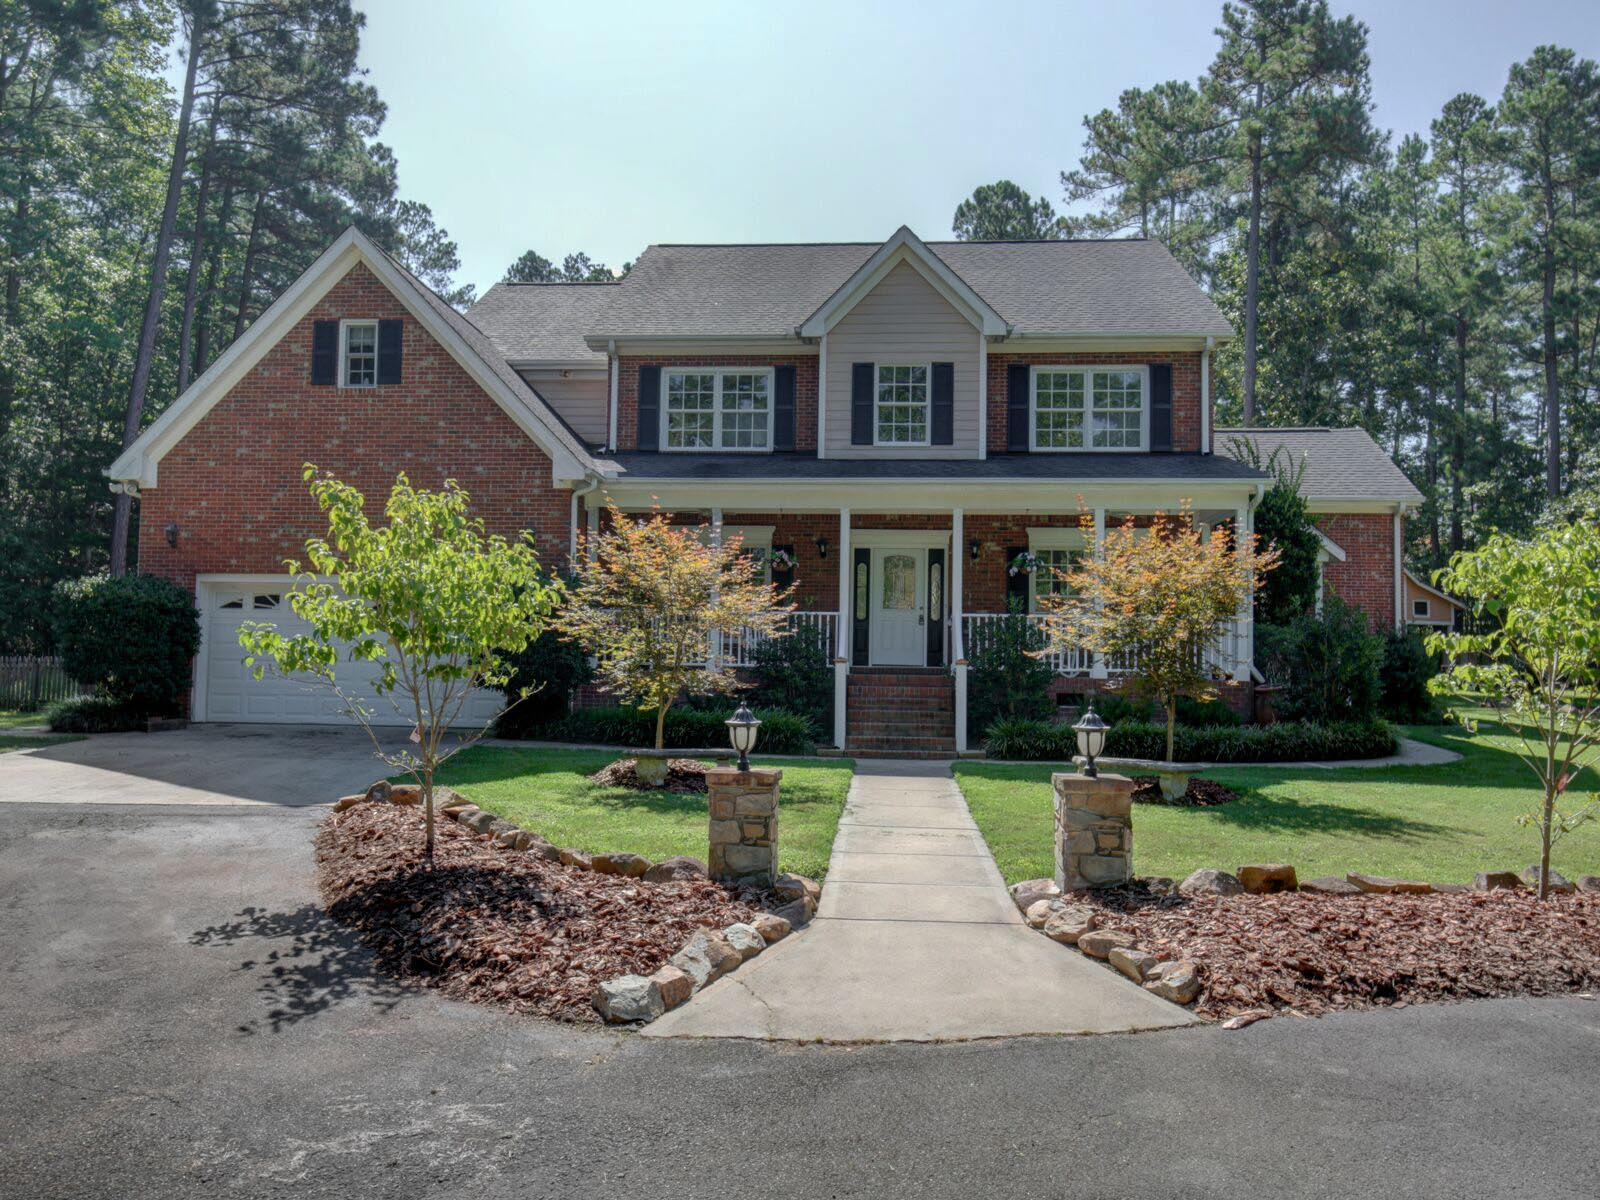 Vivienda unifamiliar En venta en 3818 Holly Springs Court, Hillsborough, NC ,27278  , EE.UU.